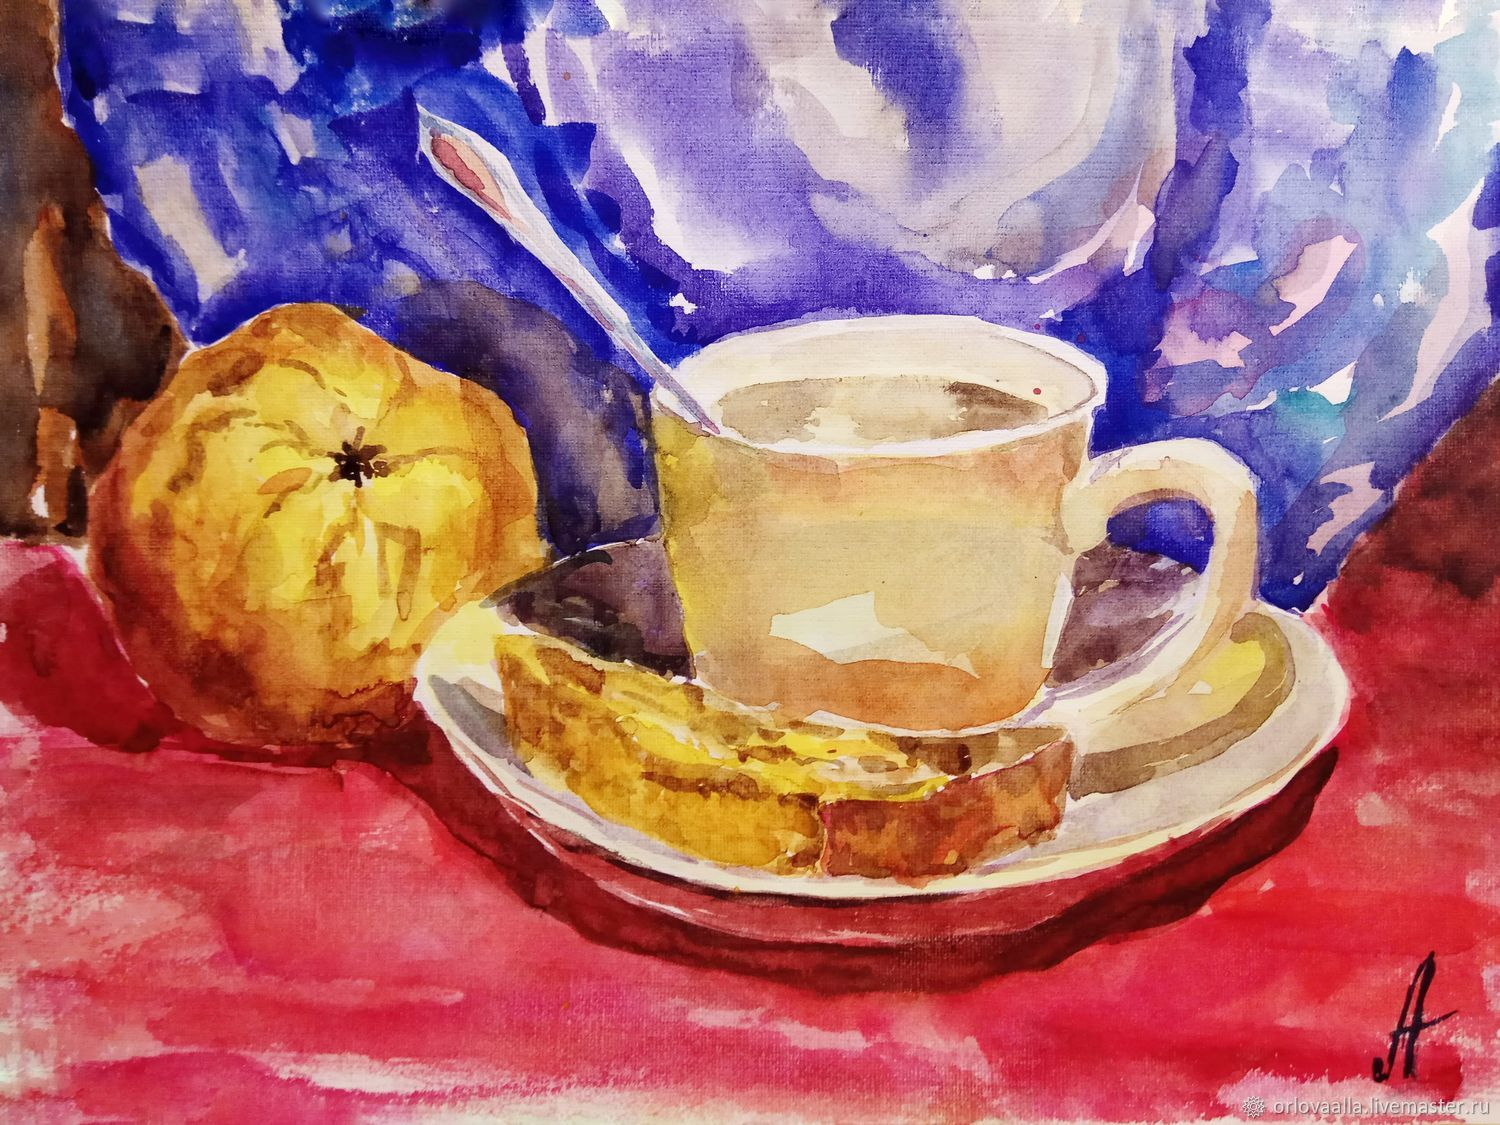 Painting A Cup Of Tea In The Kitchen Interior, Pictures, Samara,  Фото №1